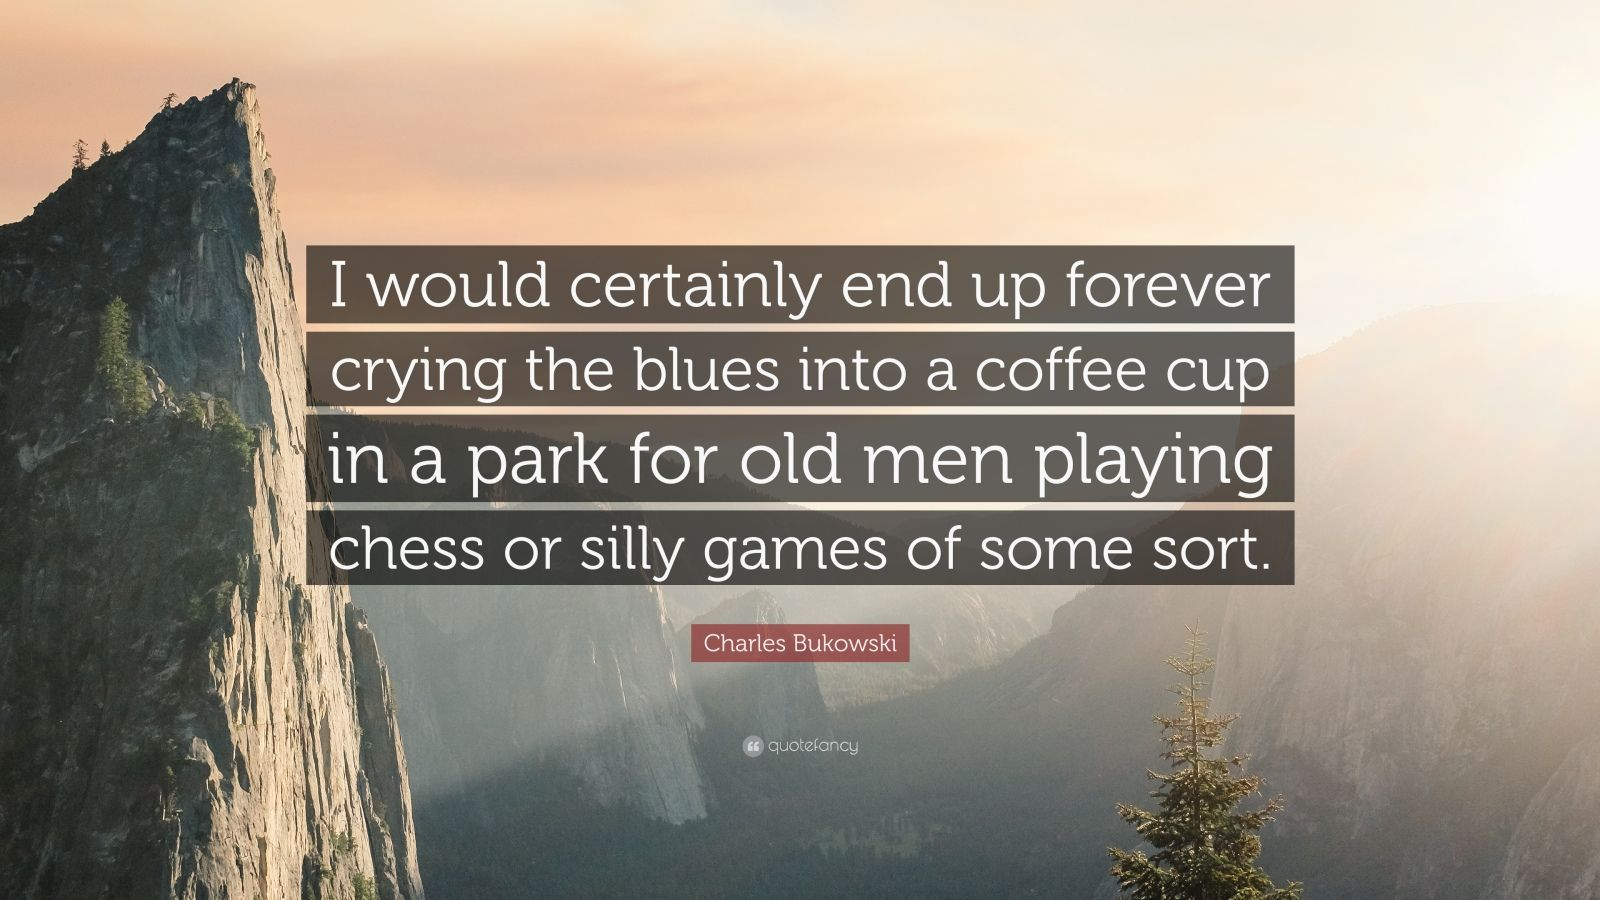 """Charles Bukowski Quote: """"I would certainly end up forever crying the blues into a coffee cup in a park for old men playing chess or silly games of some sort."""""""